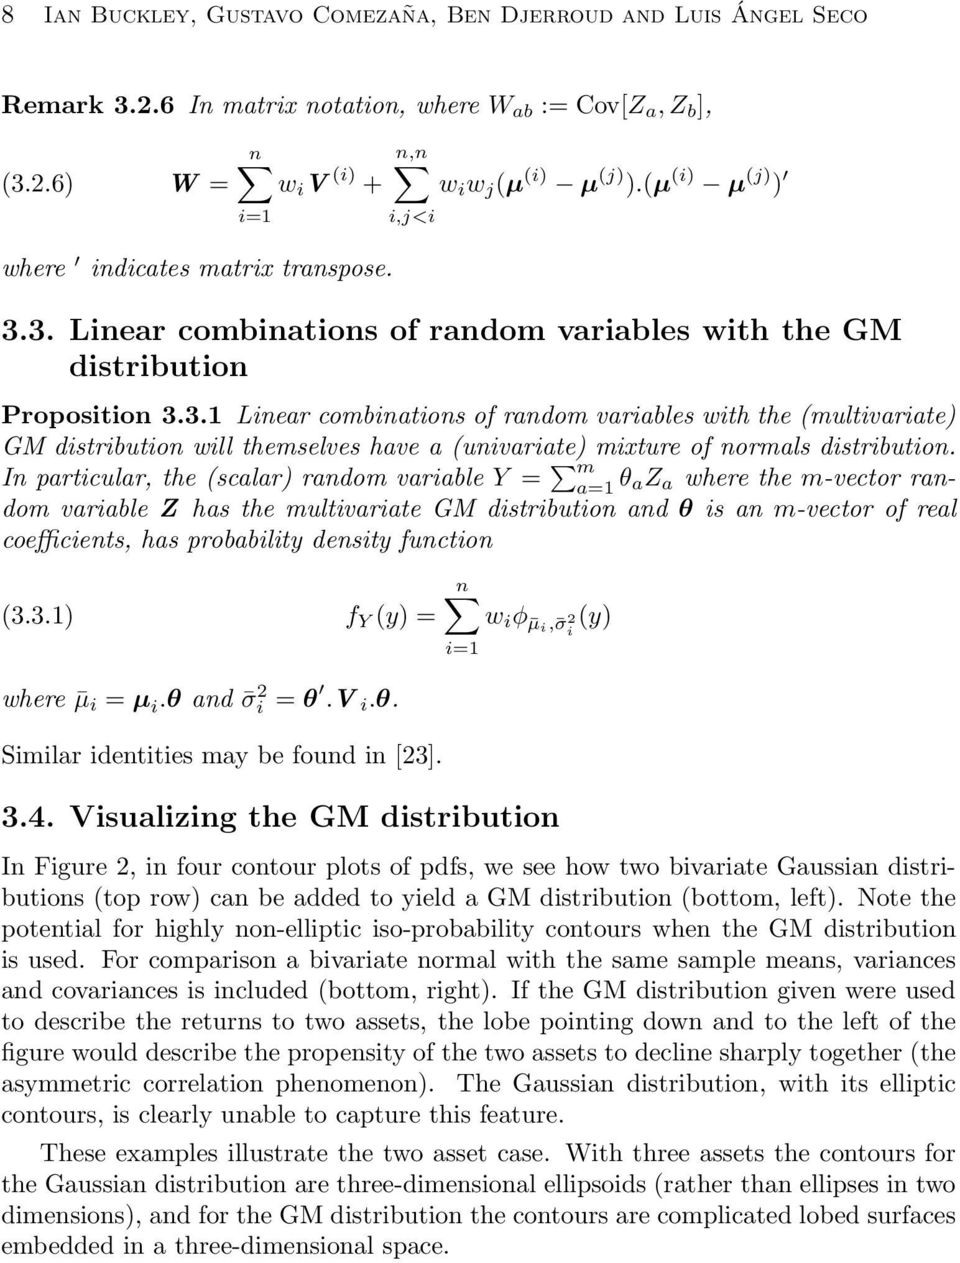 In particular, the (scalar) random variable Y = m a=1 θ az a where the m-vector random variable Z has the multivariate GM distribution and θ is an m-vector of real coefficients, has probability